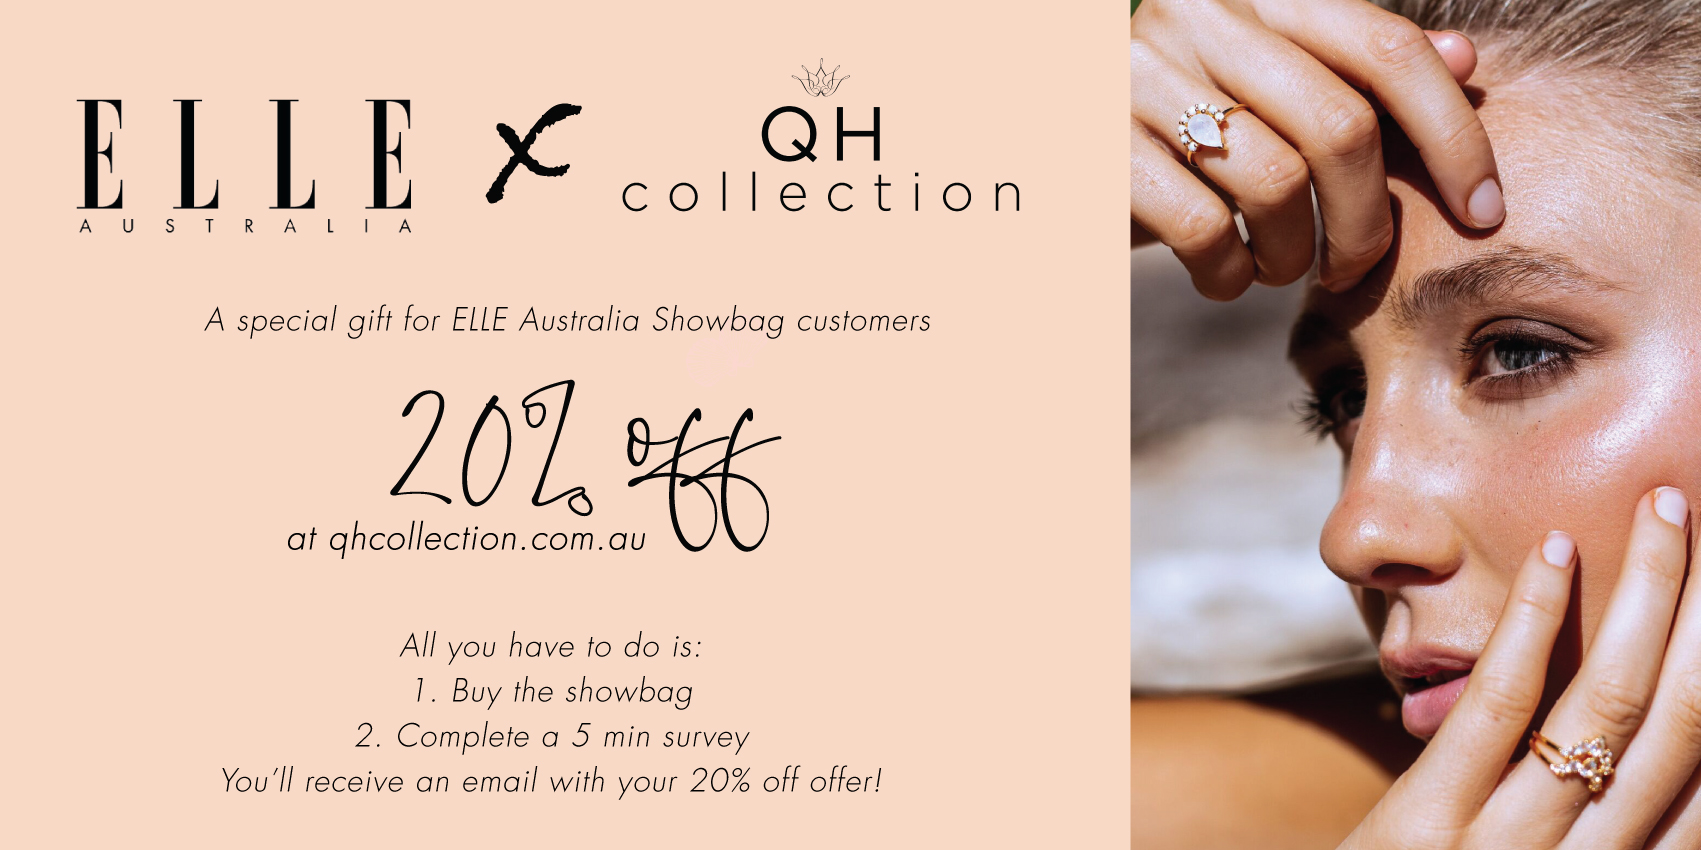 QH Collection x ELLE Australia Special Offer